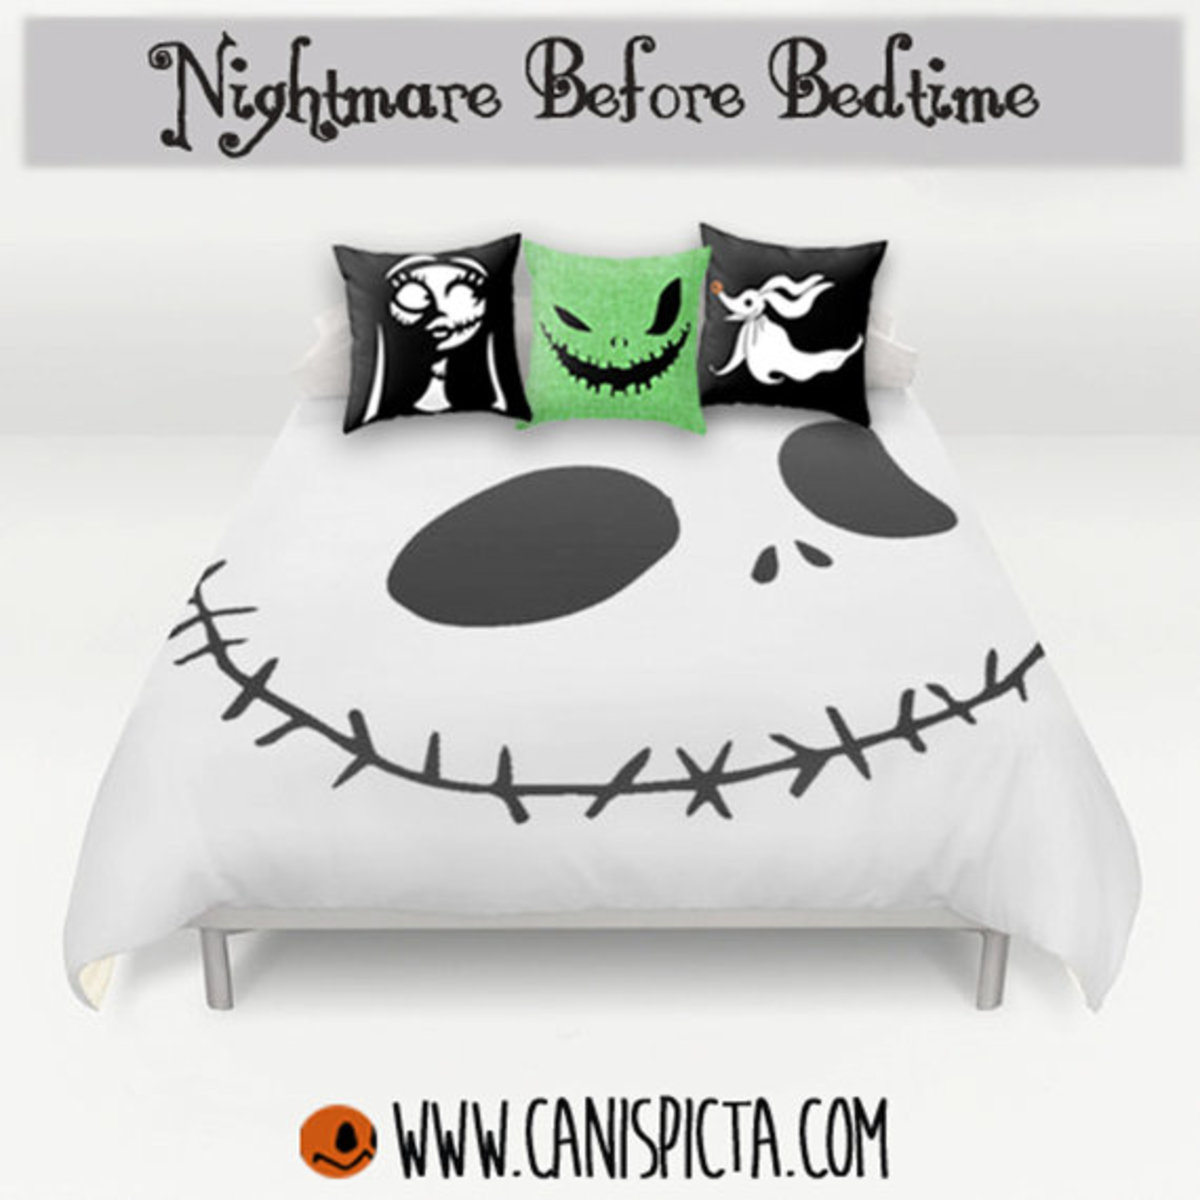 Nightmare Before Christmas Bedroom Décor Ideas HubPages - nightmare before christmas bedroom decor